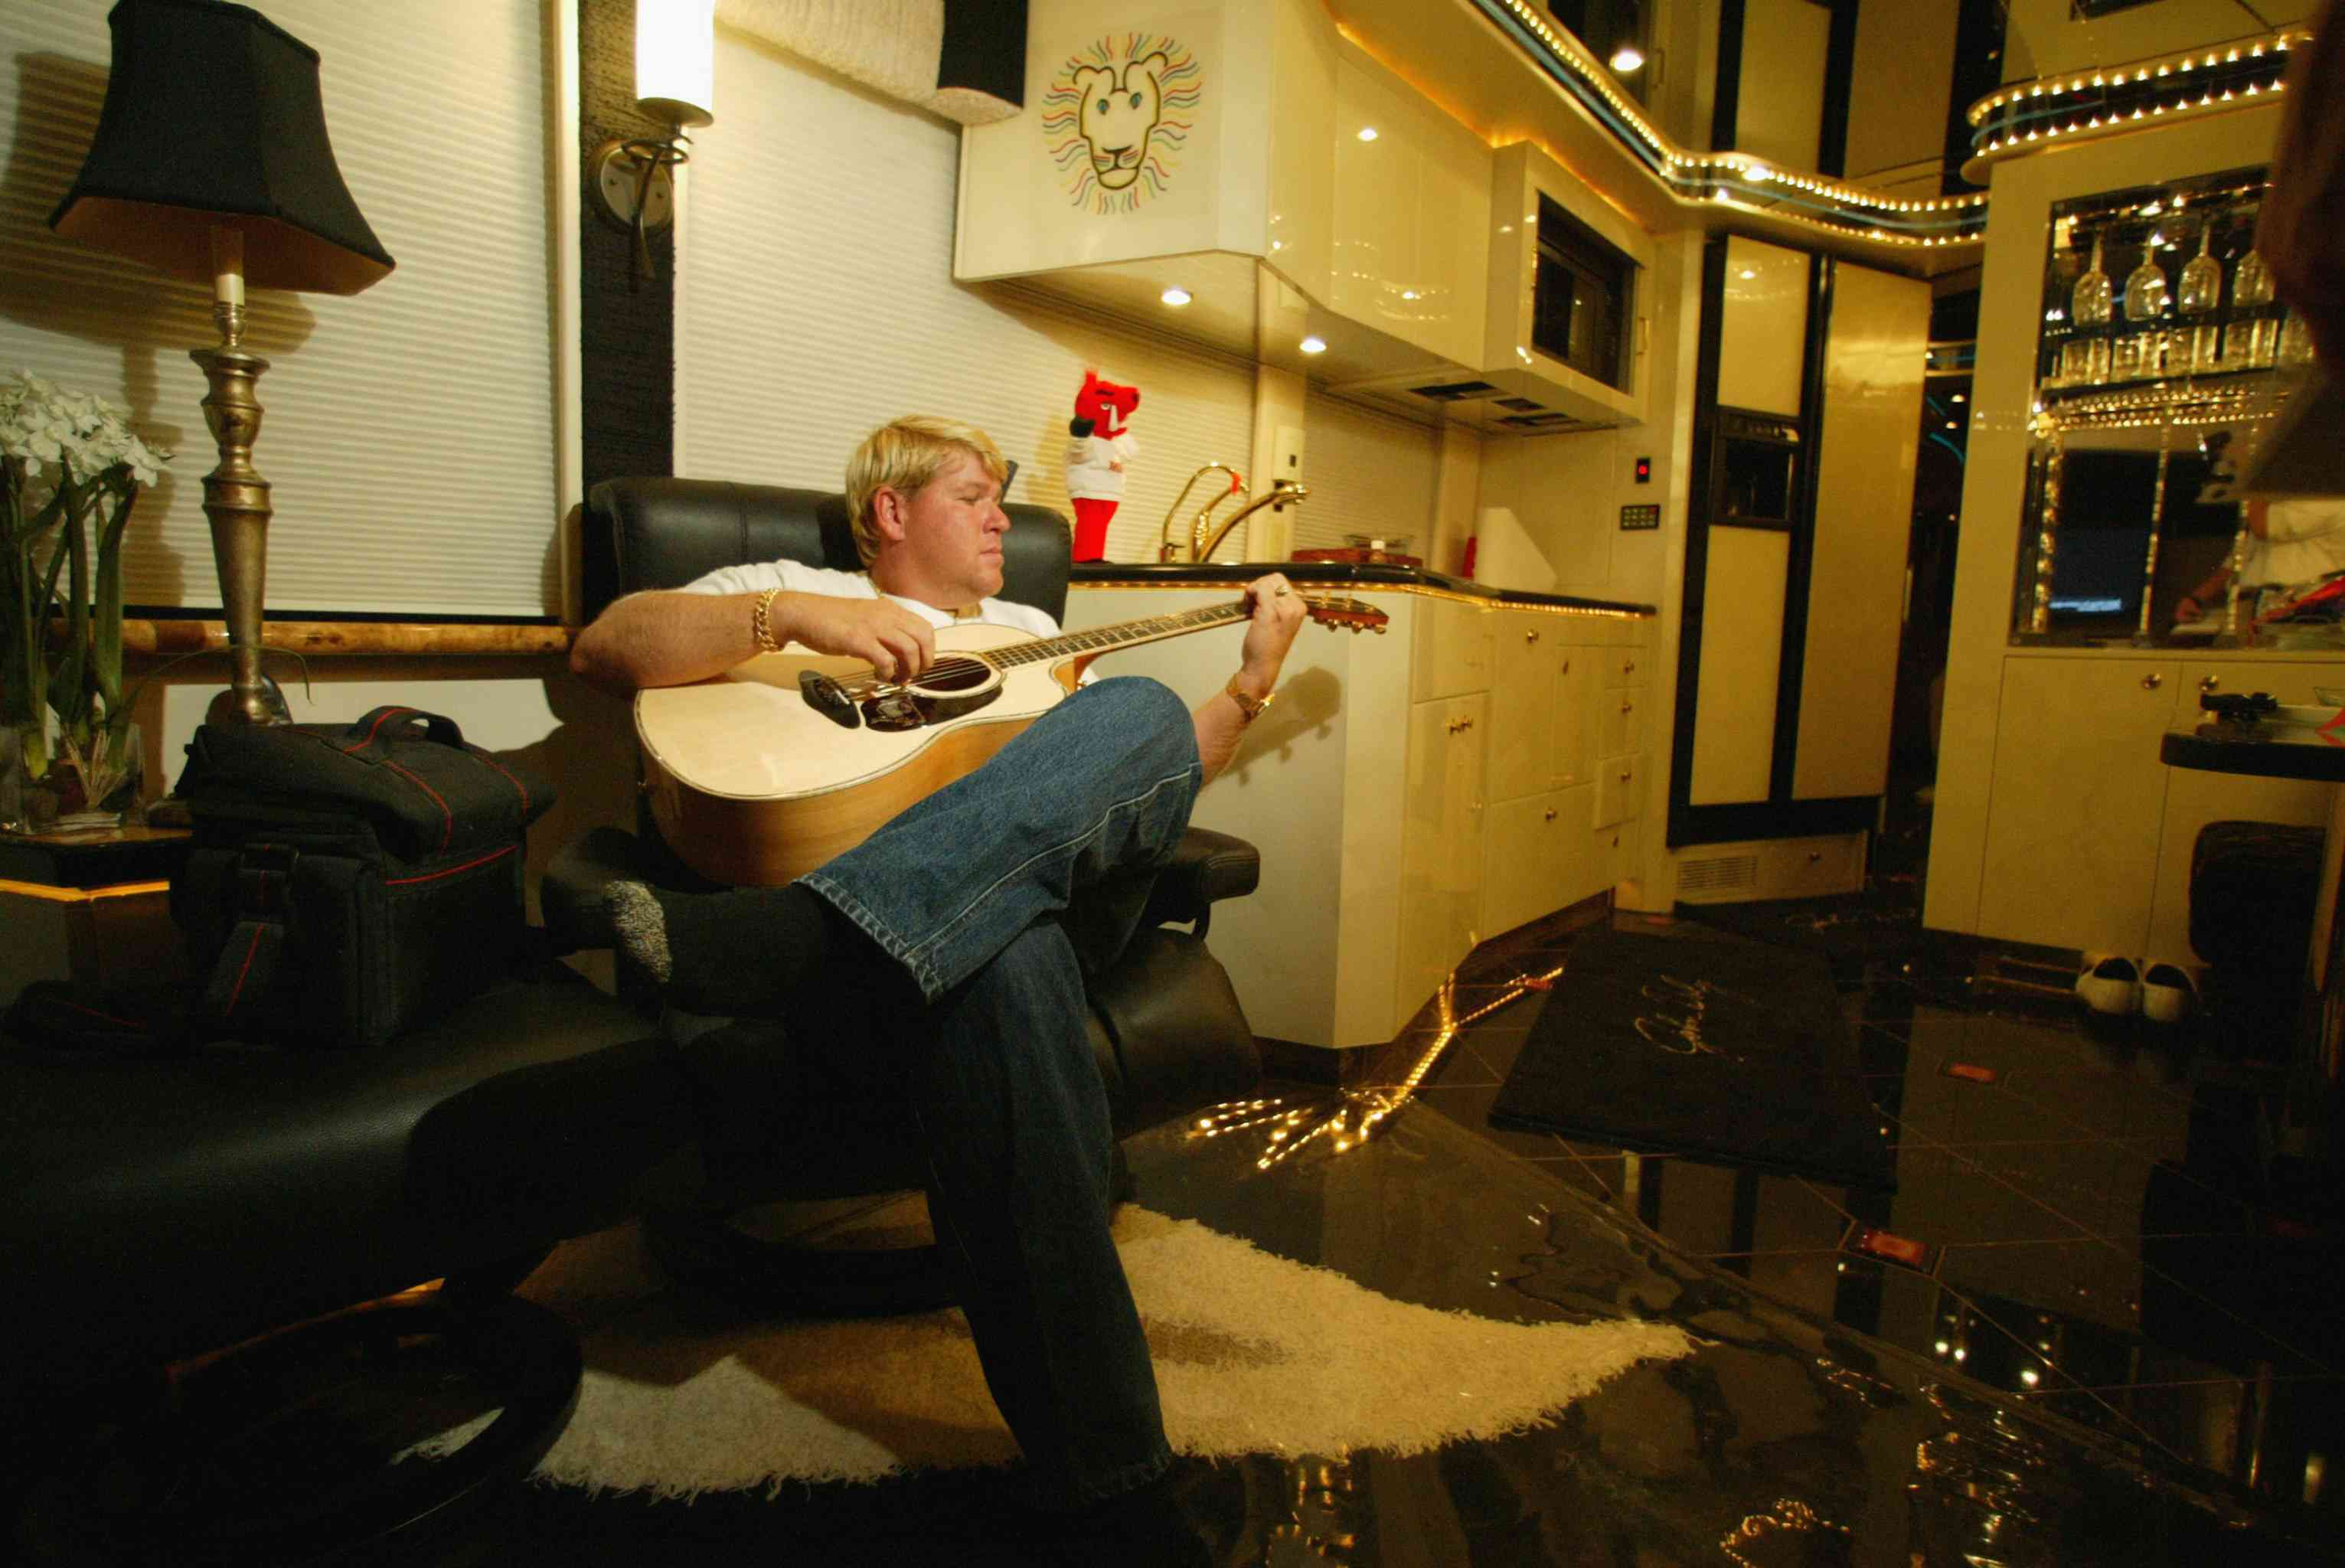 John Daly relaxes as he plays his guitar in his motorhome prior to the start of the U.S. Open on June 12, 2002 in Farmingdale, New York.